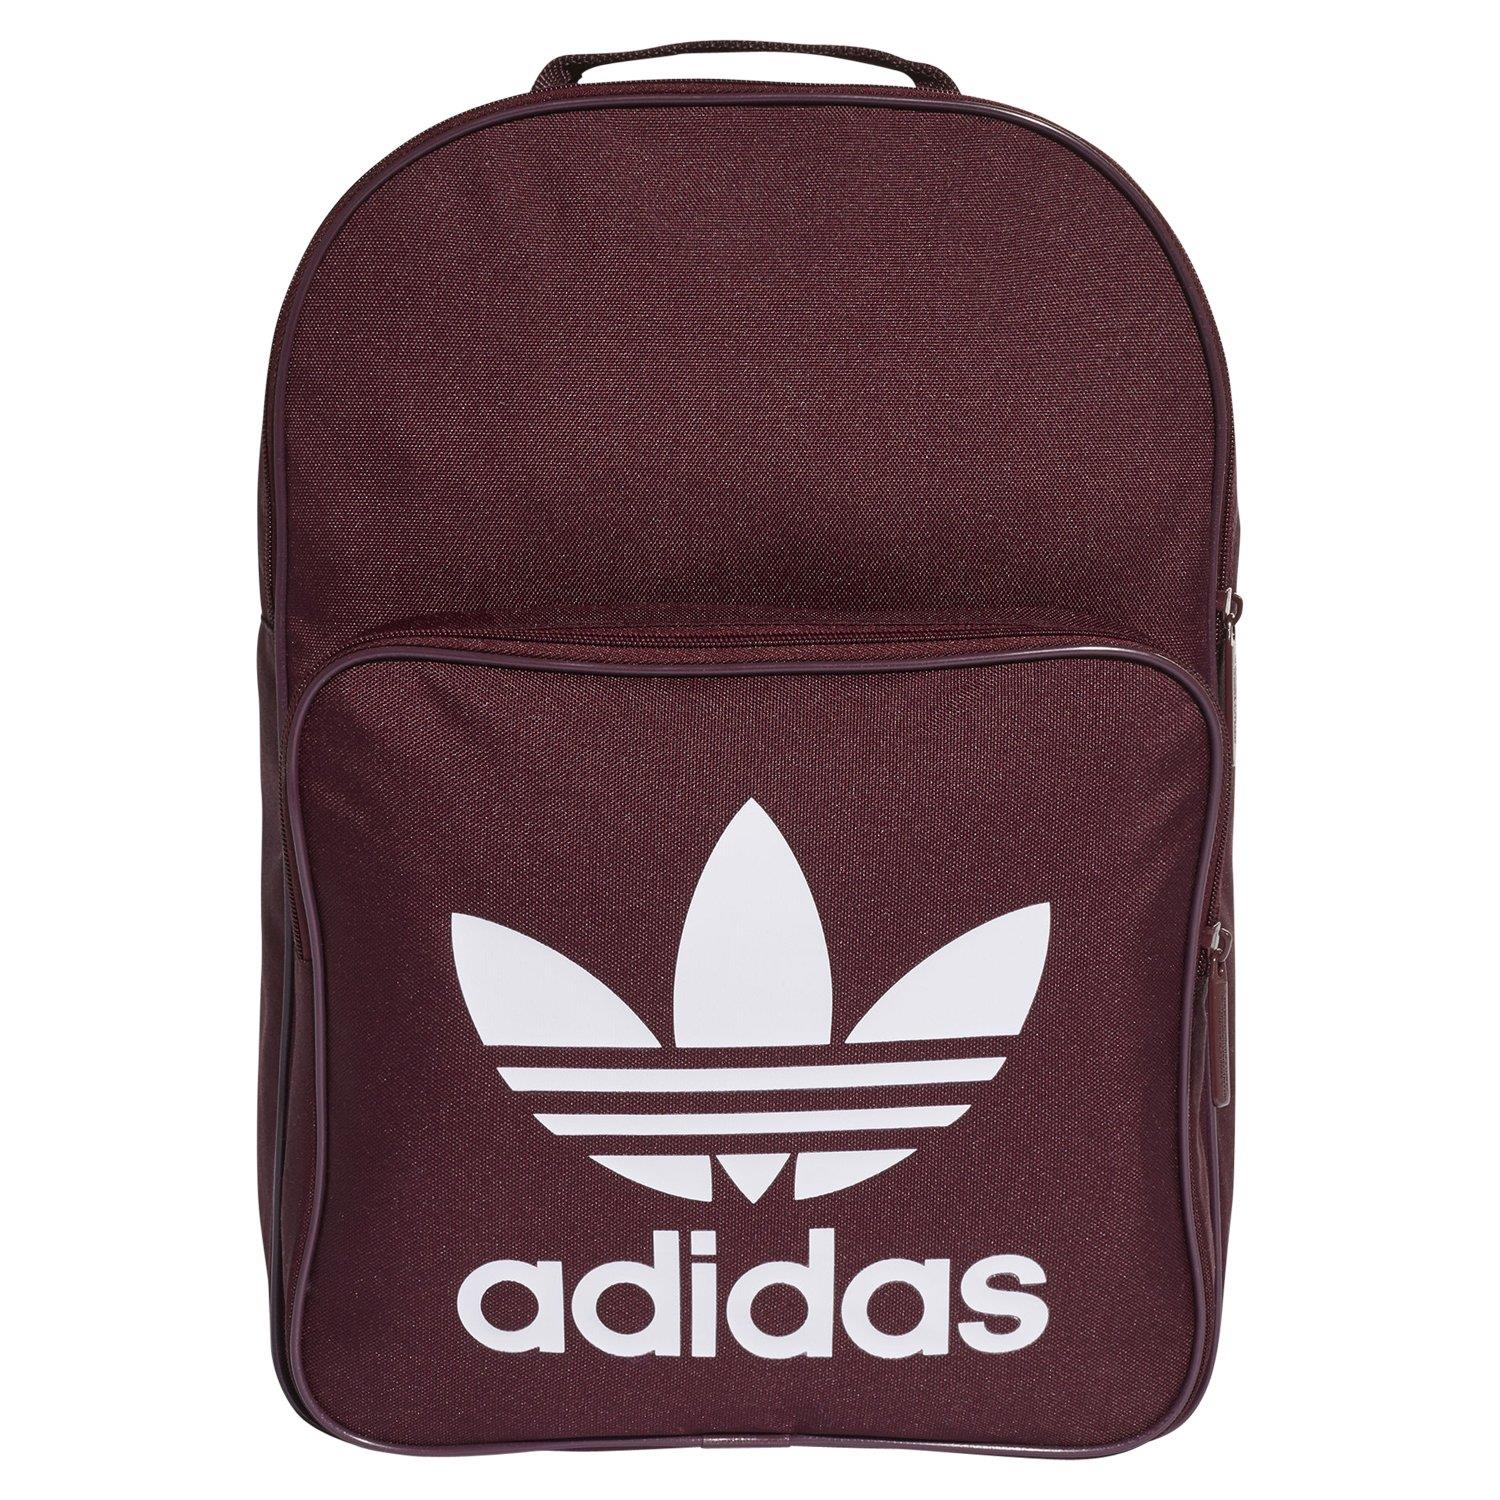 4e330b6bd00 adidas ORIGINALS CLASSIC TREFOIL SCHOOL BACKPACK RED MAROON BACK TO COLEEGE